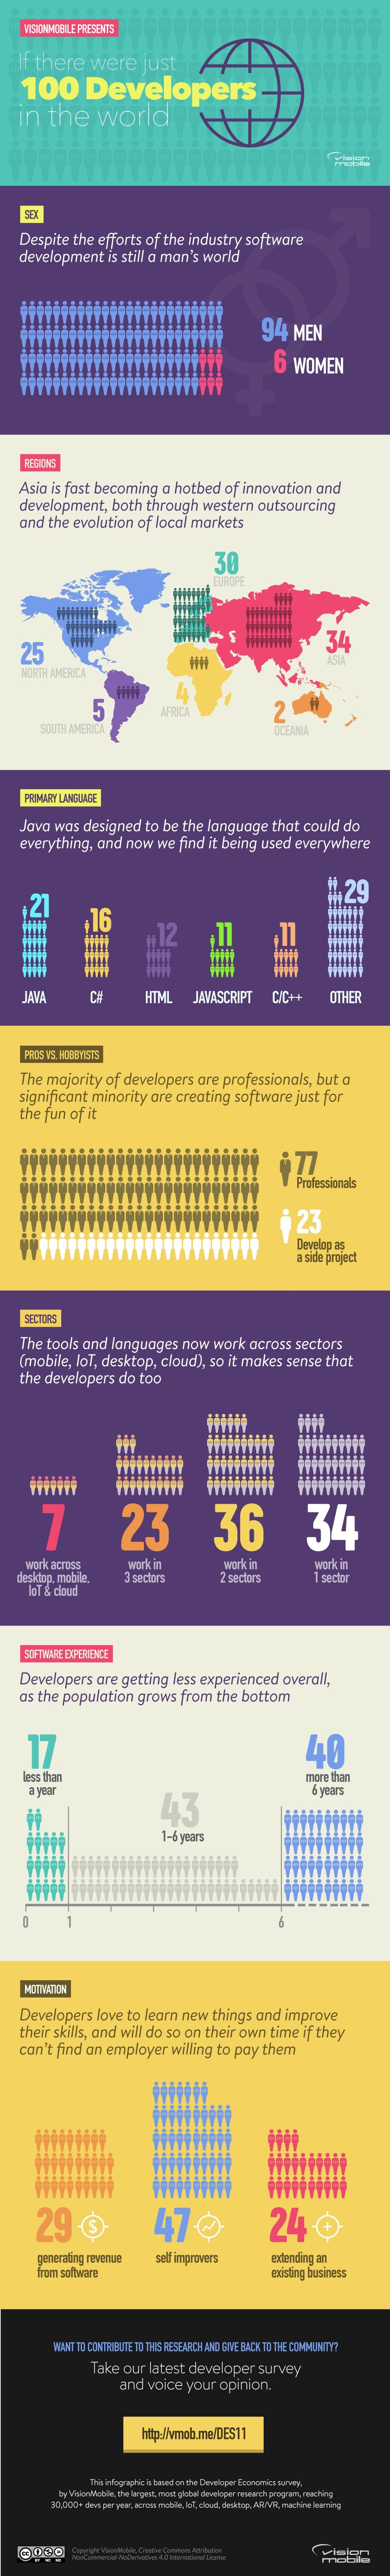 If There were 100 Developers in the World #Infographic